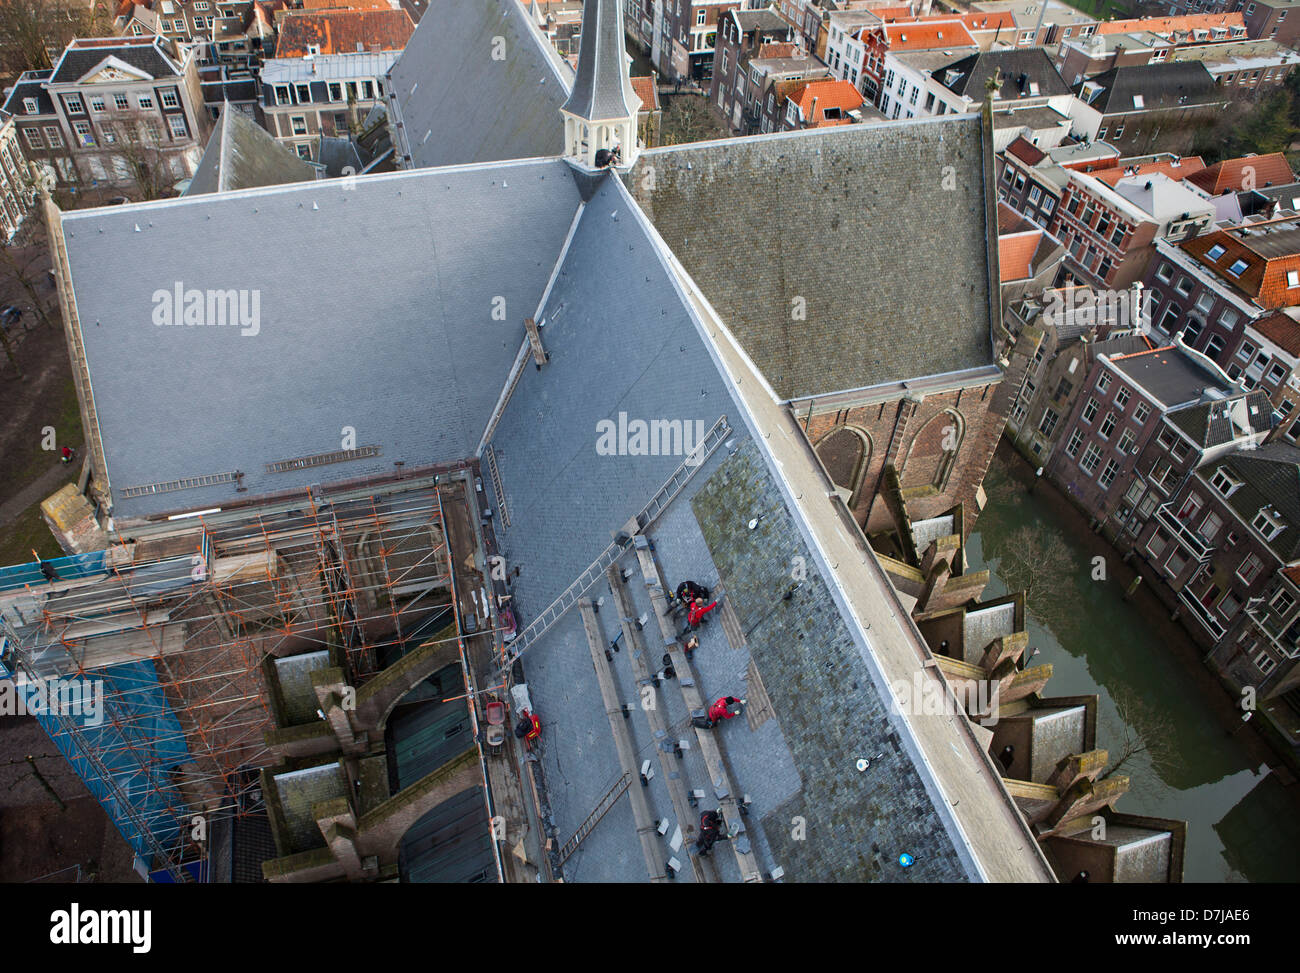 renovation of the roof of the 'grote kerk' in Dordrecht, Holland - Stock Image